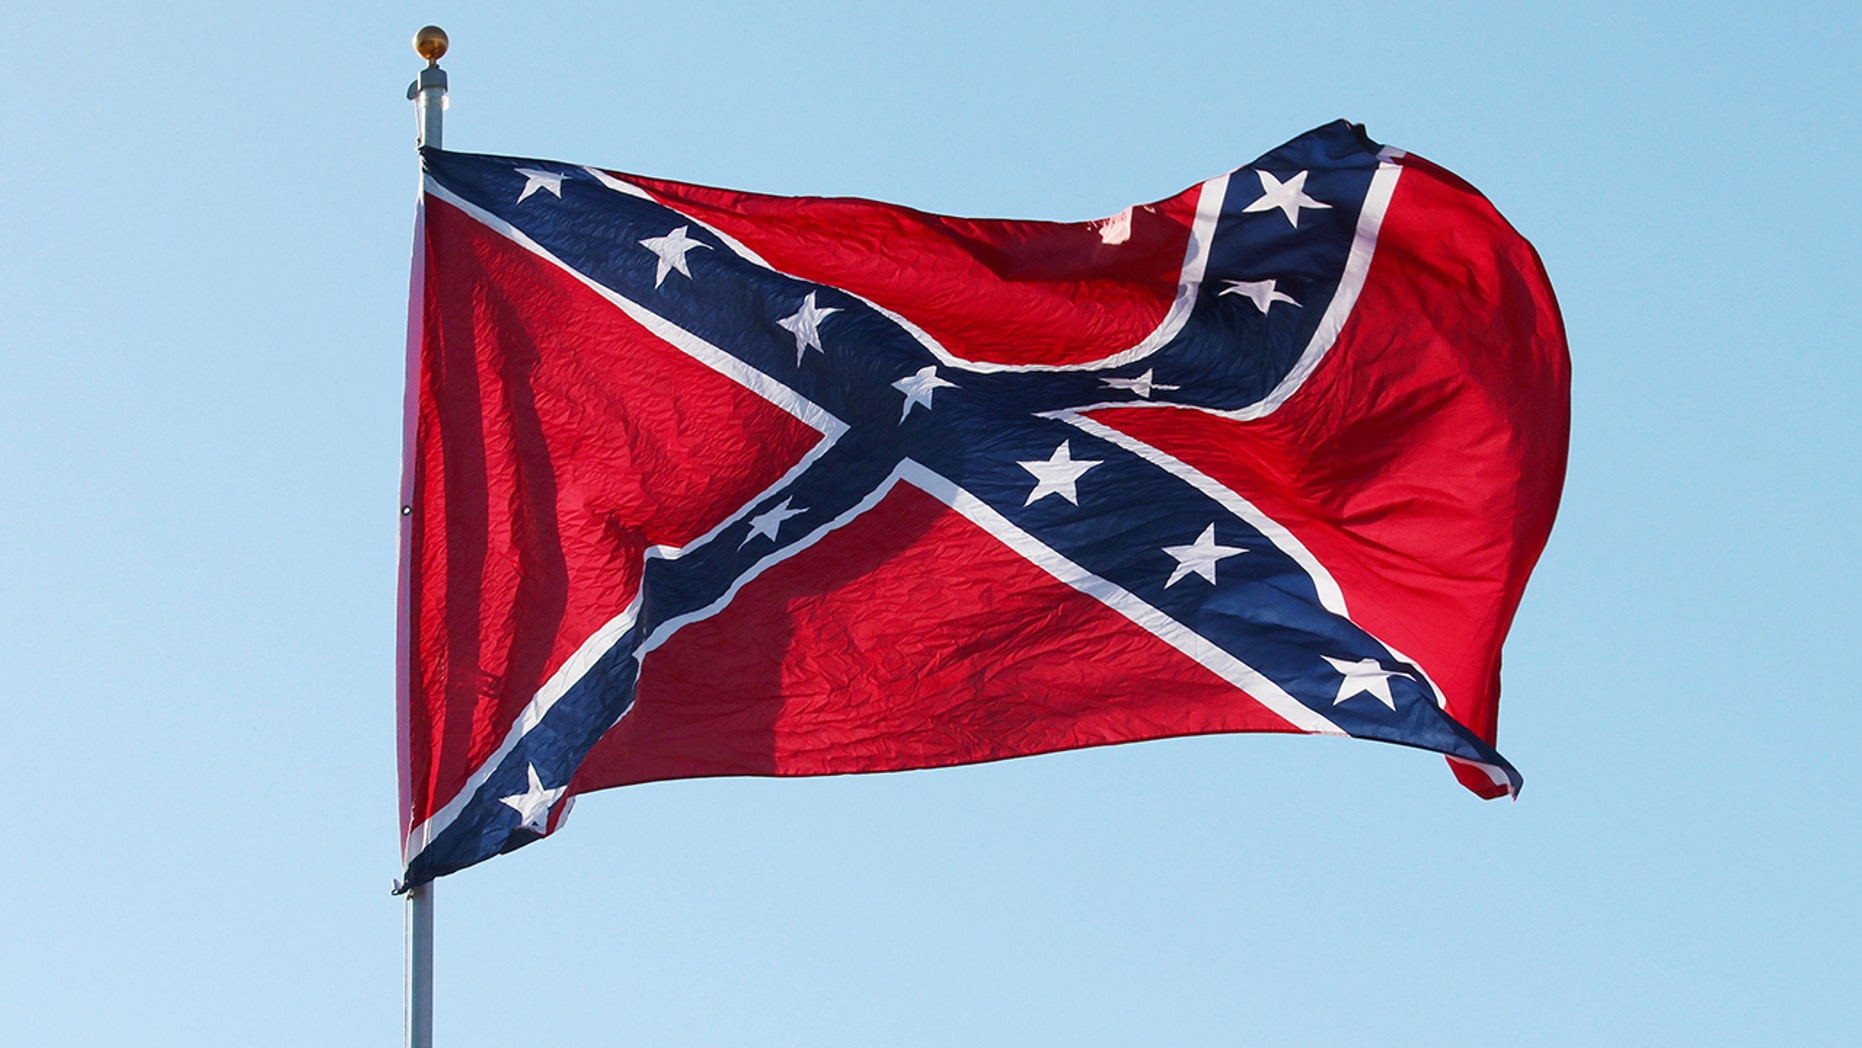 The confederate flag was banned at Lapel High School in Indiana after clashes erupted between students.